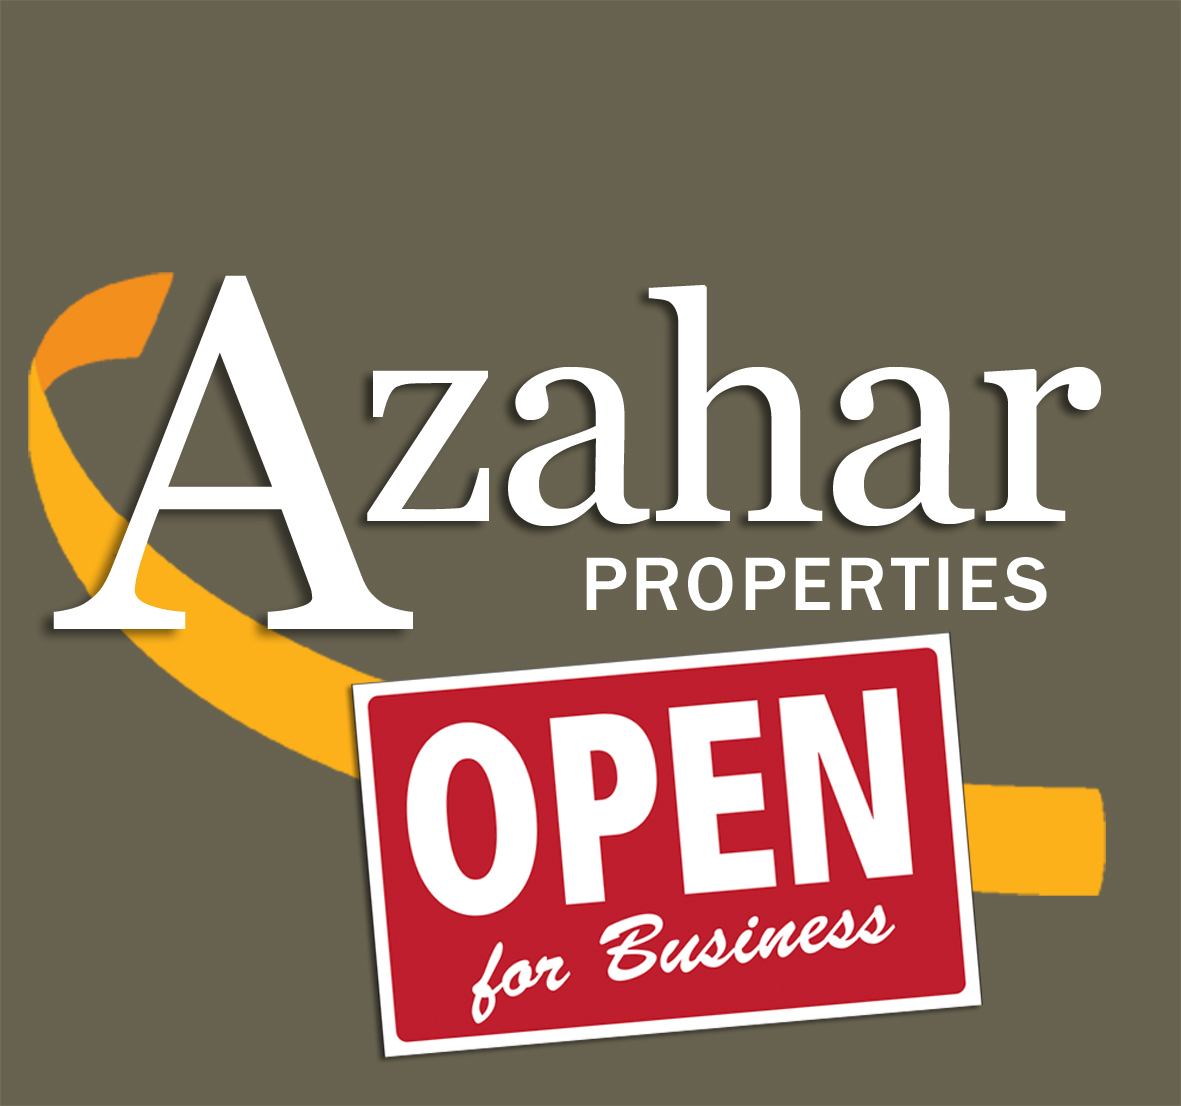 Azahar Properties open for business copy